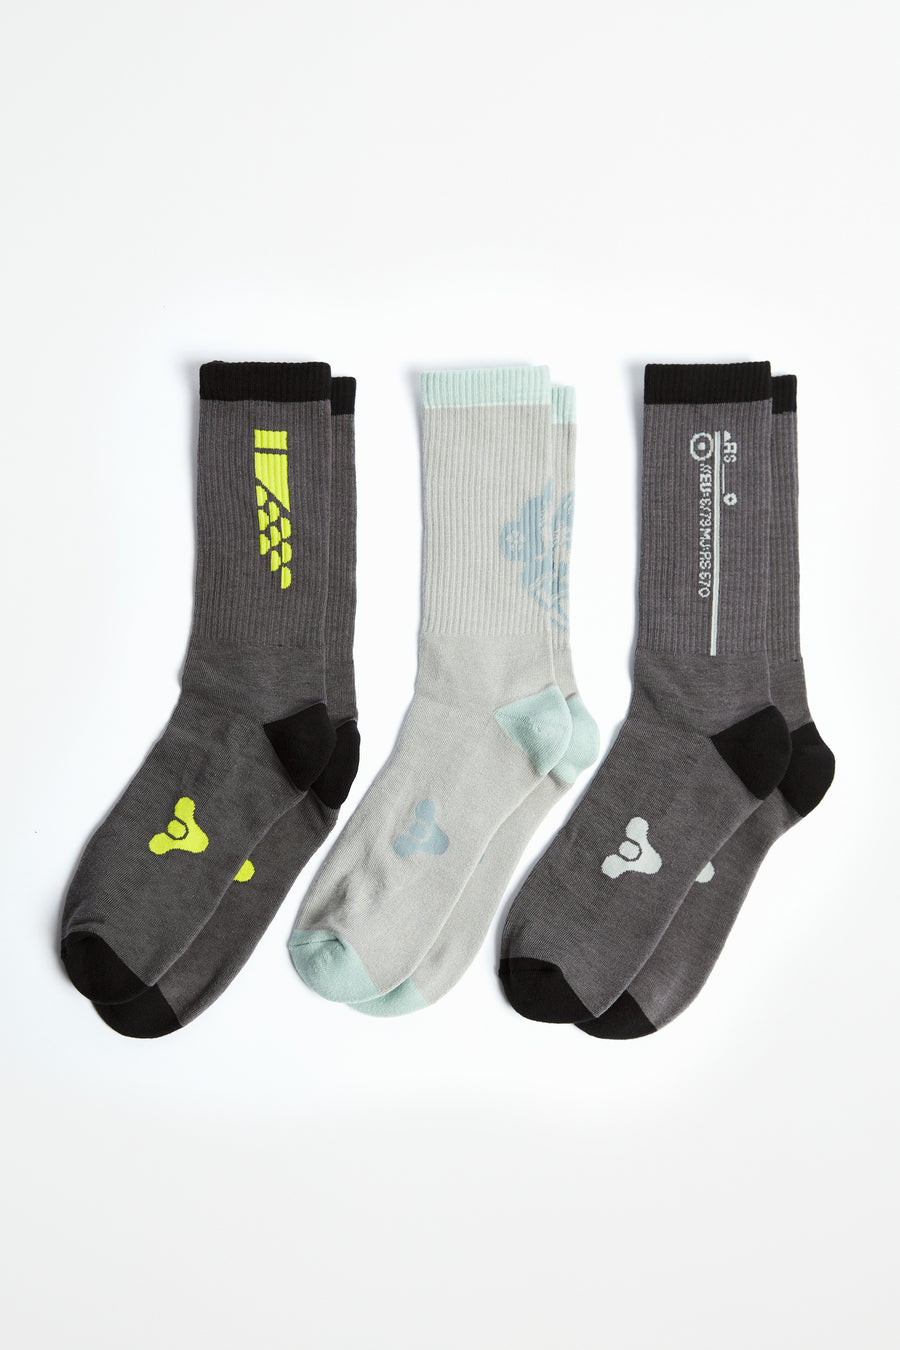 Destiny Europa Socks Pack